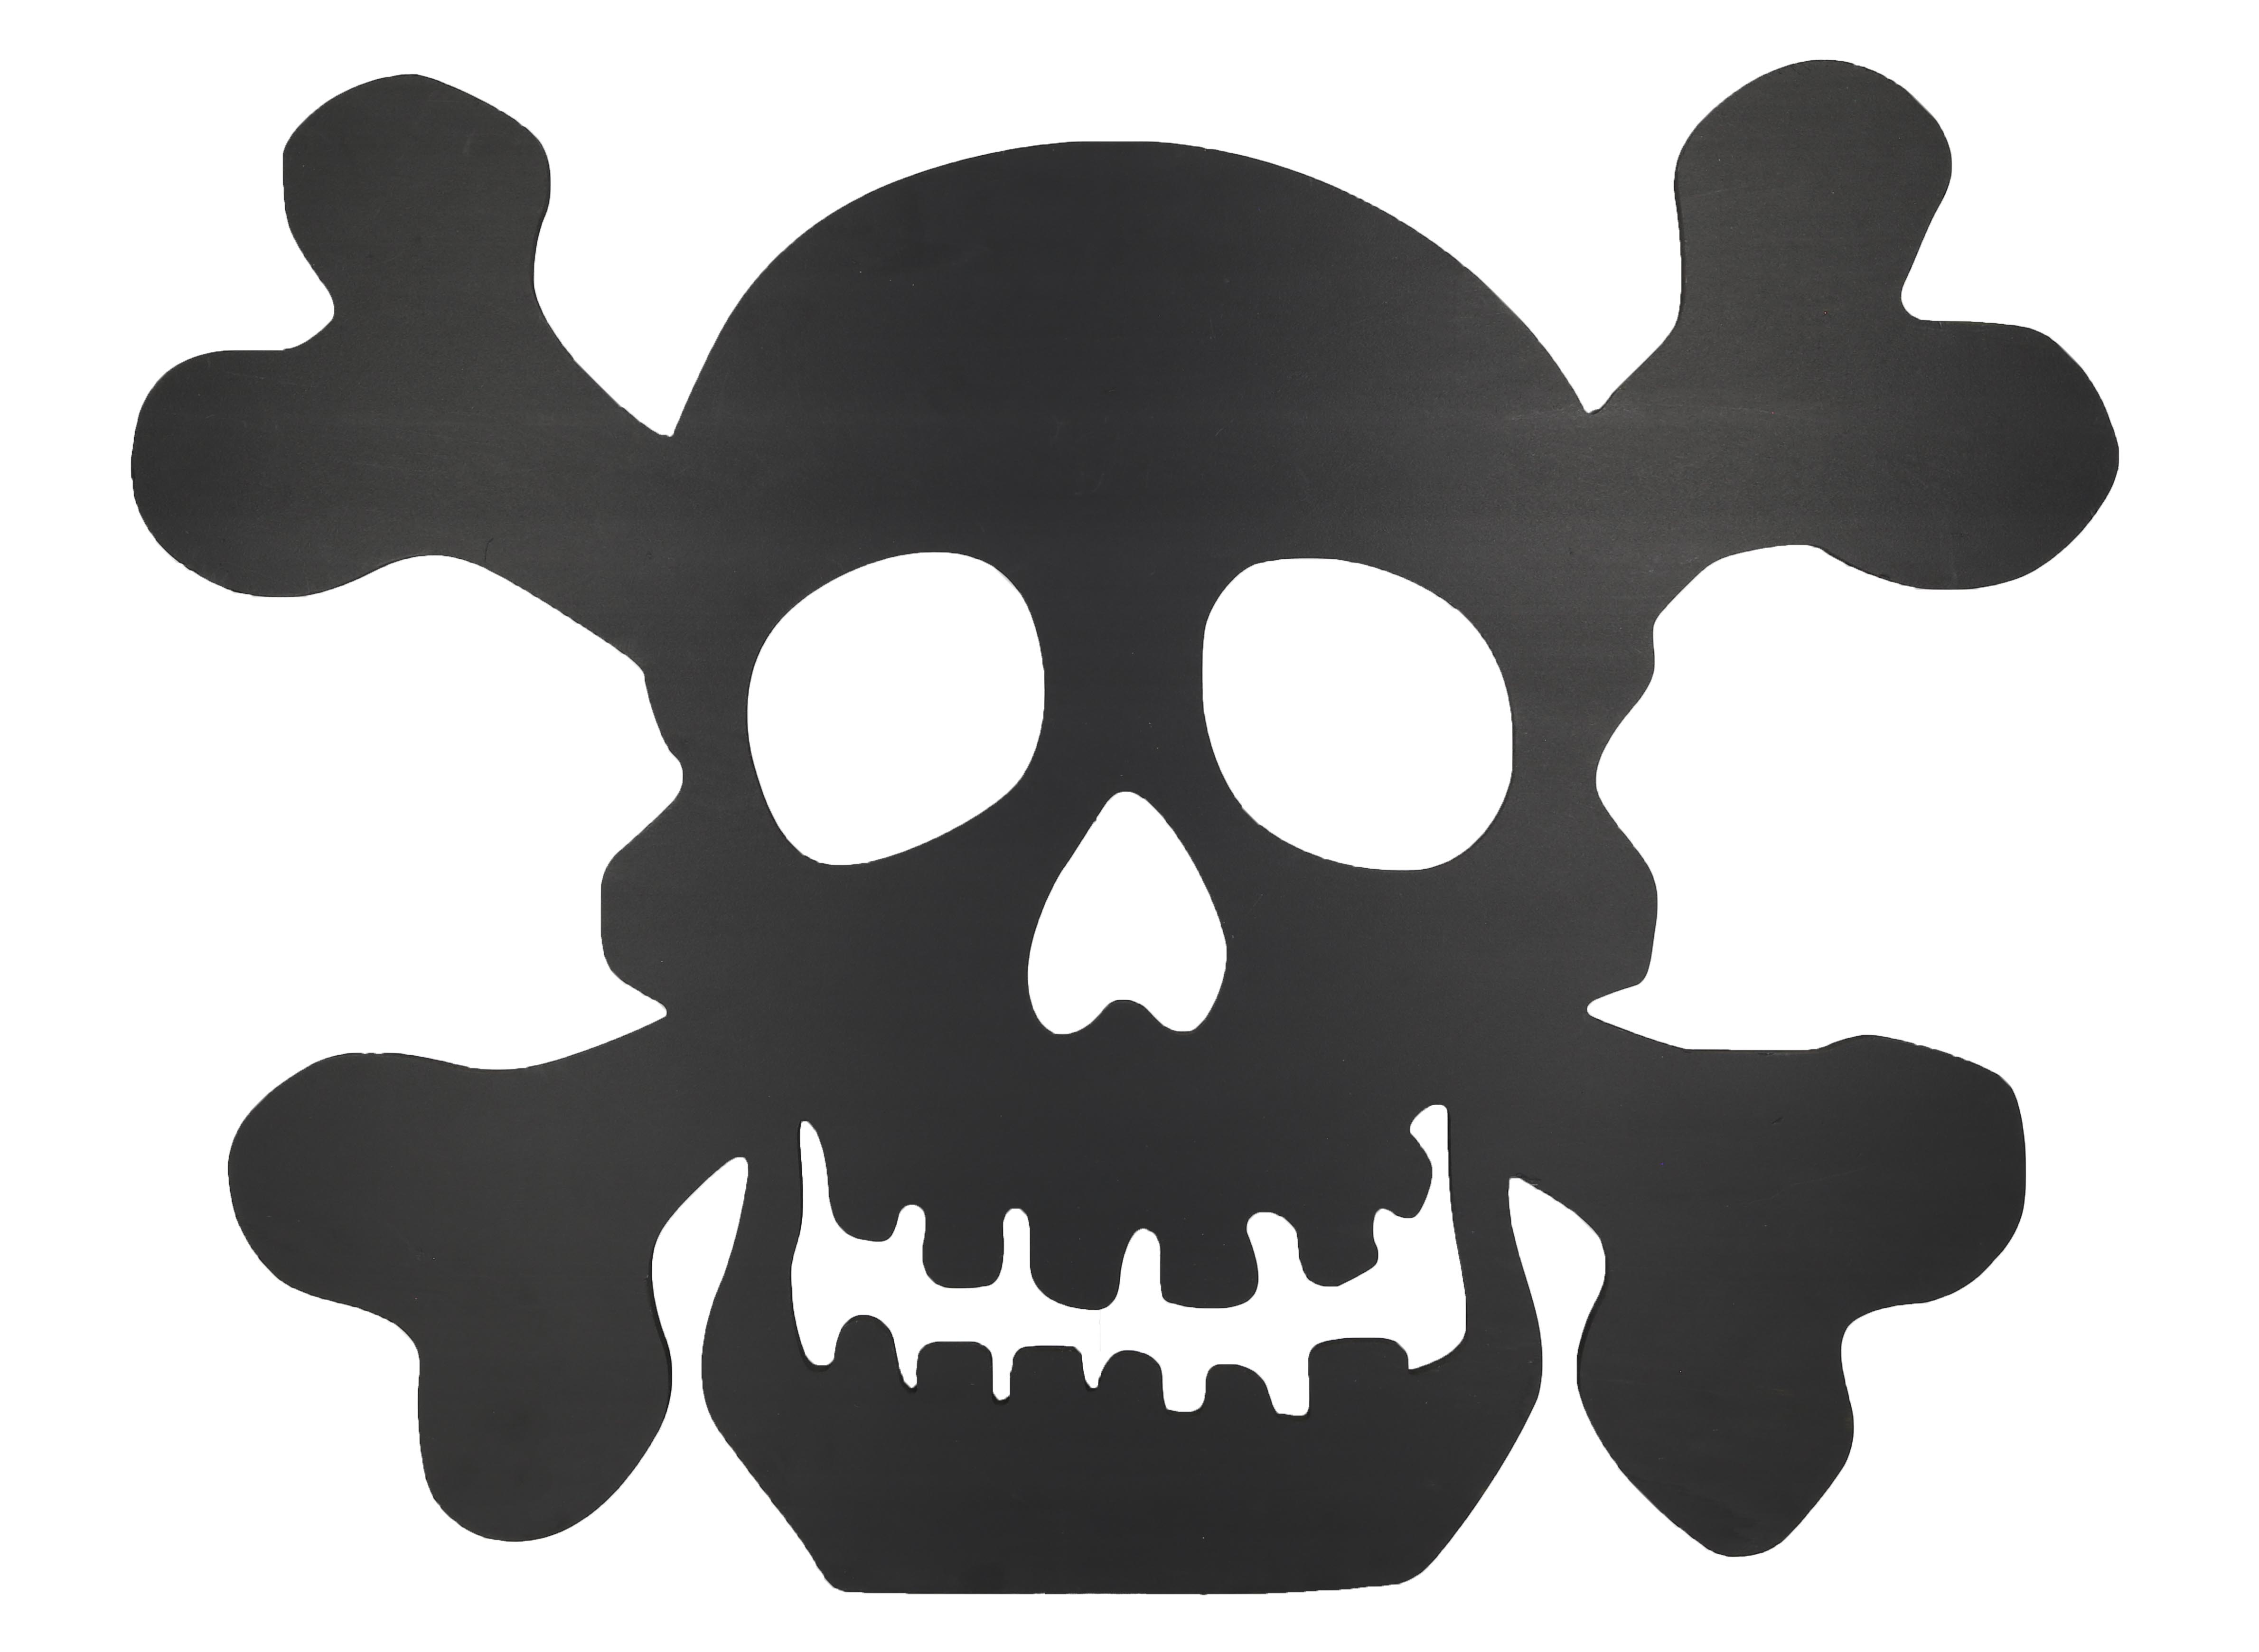 Design House Black Skull Silhouette Lawn Decoration, 23.6x30.3-inches